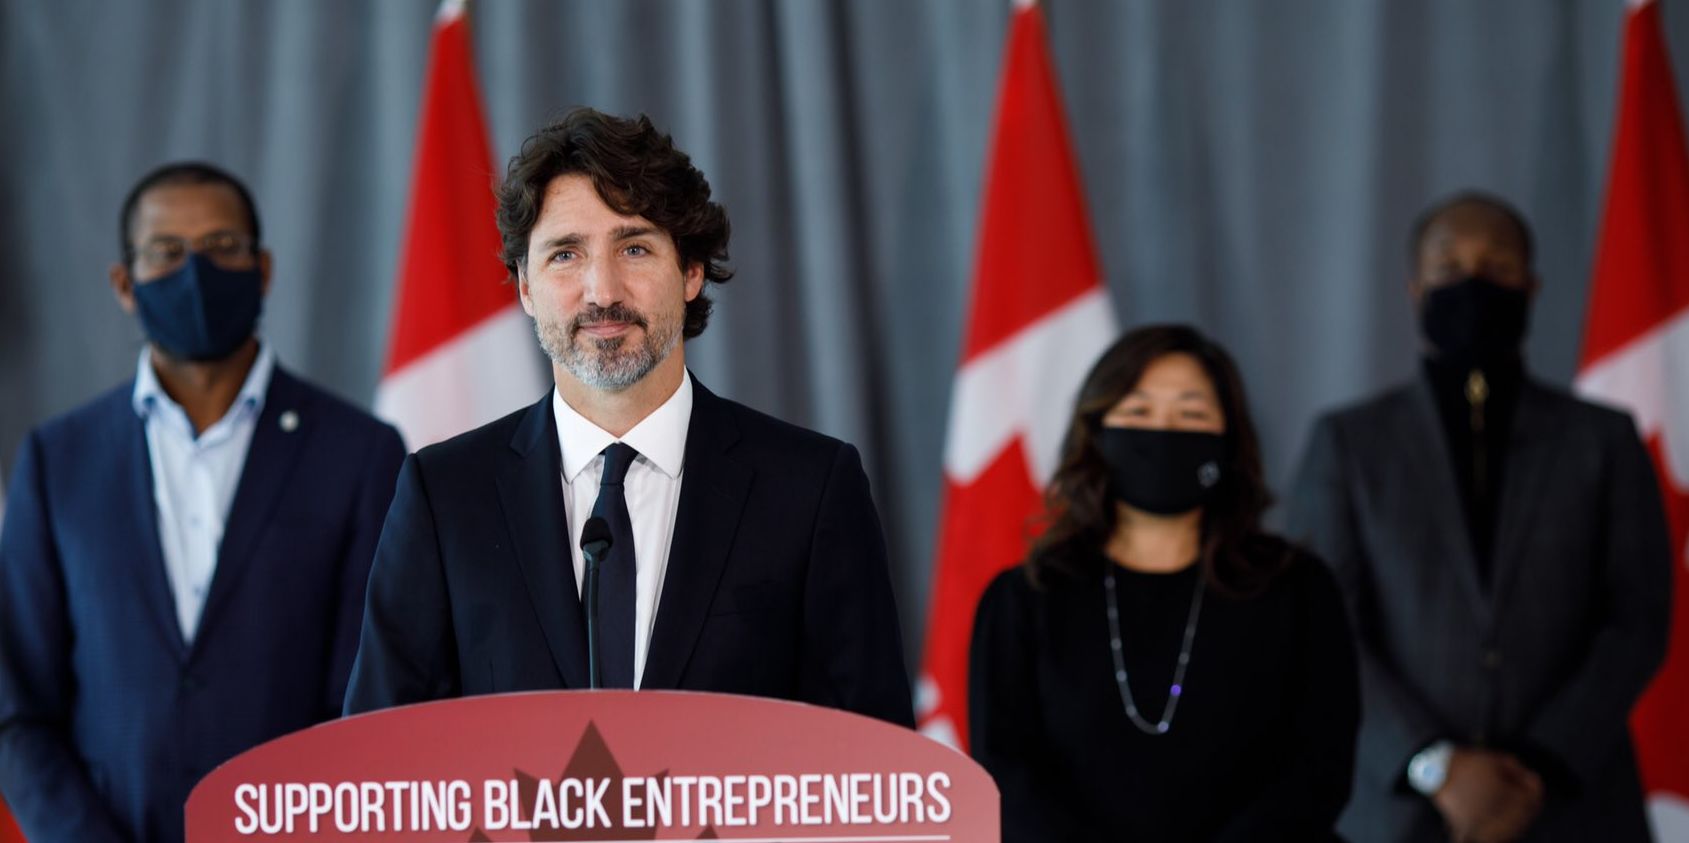 Trudeau's race-based entrepreneurship funding is the definition of systemic racism